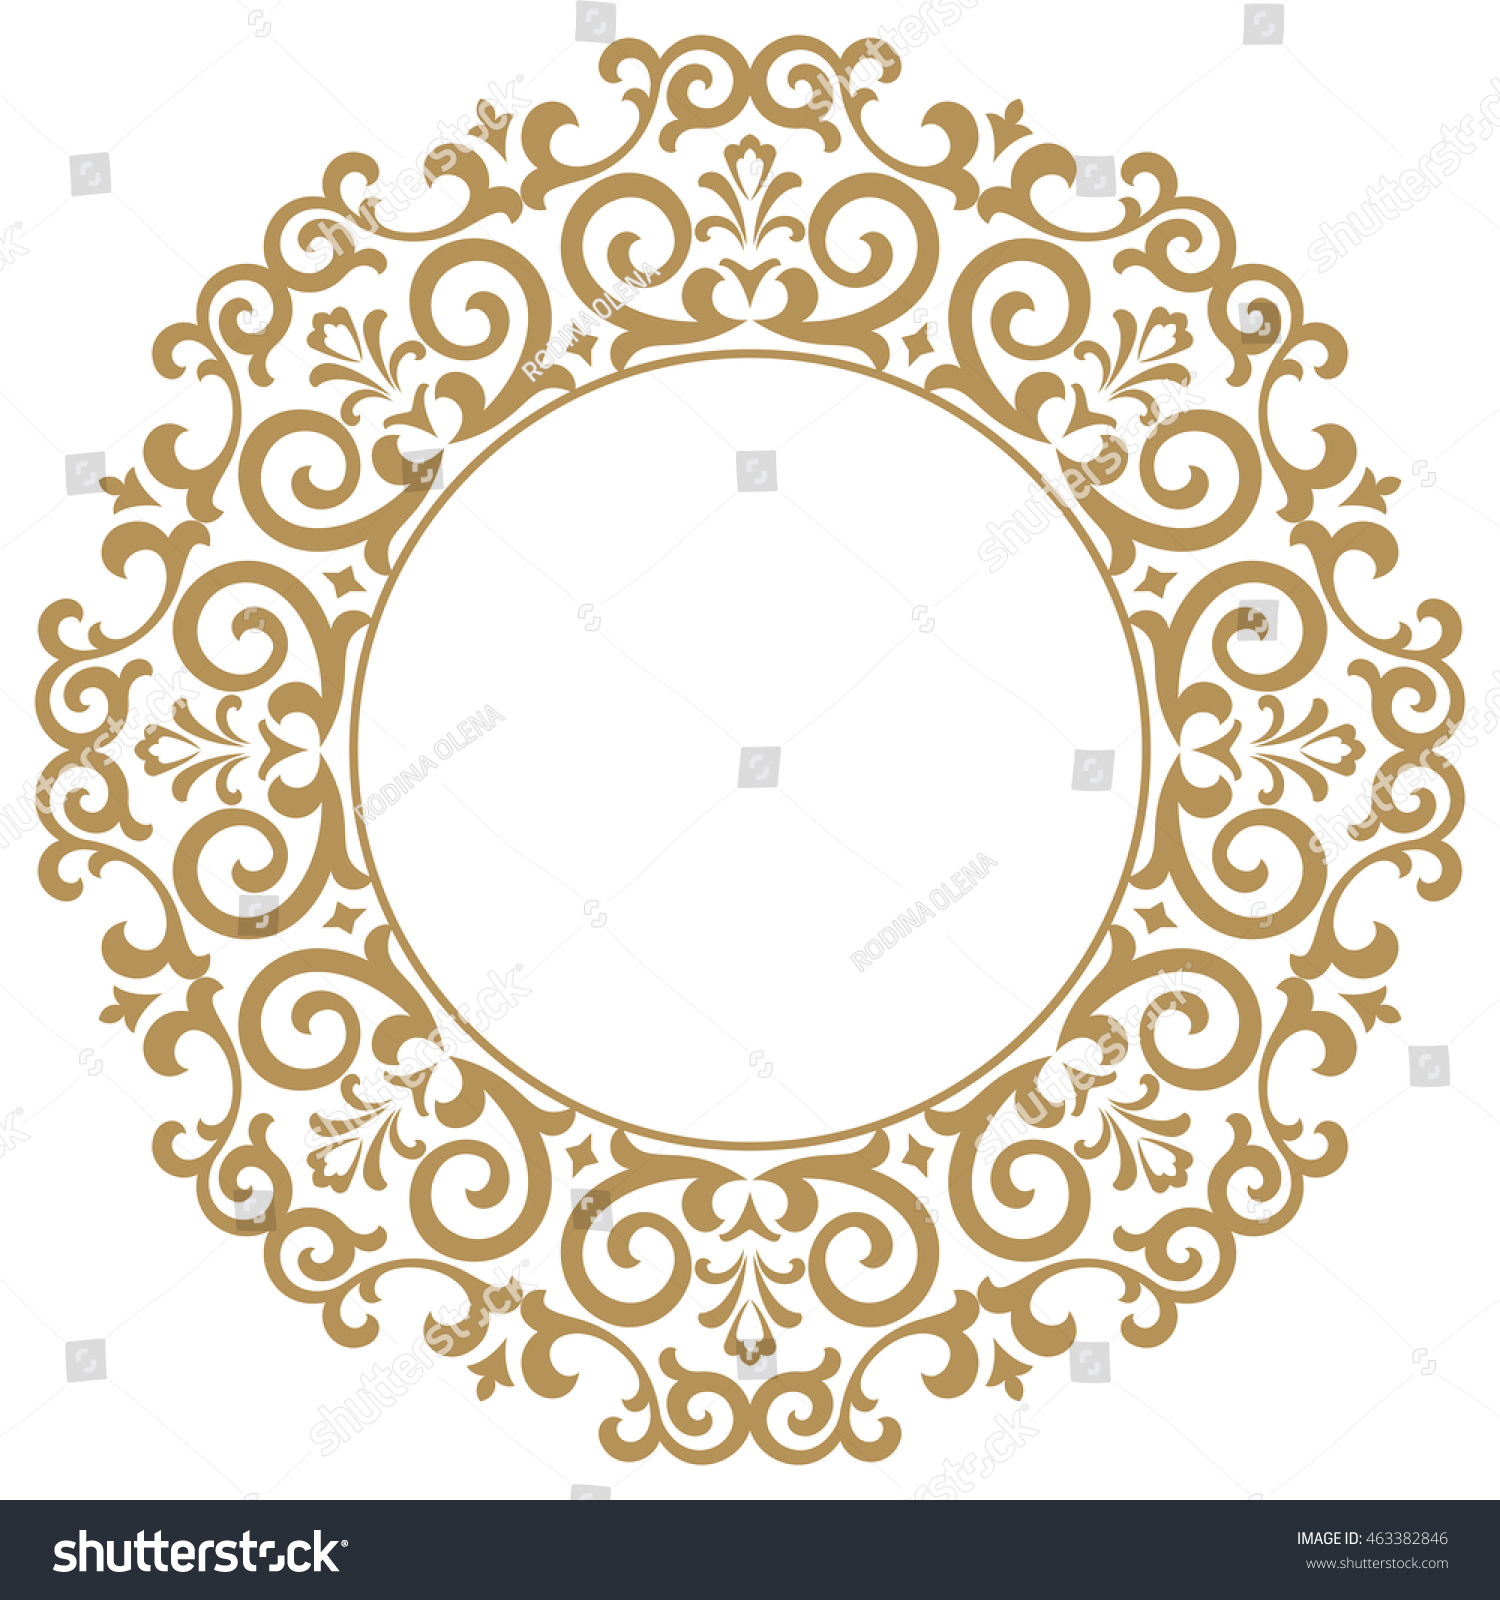 Frame Design Line Art : Decorative line art frames design template stock